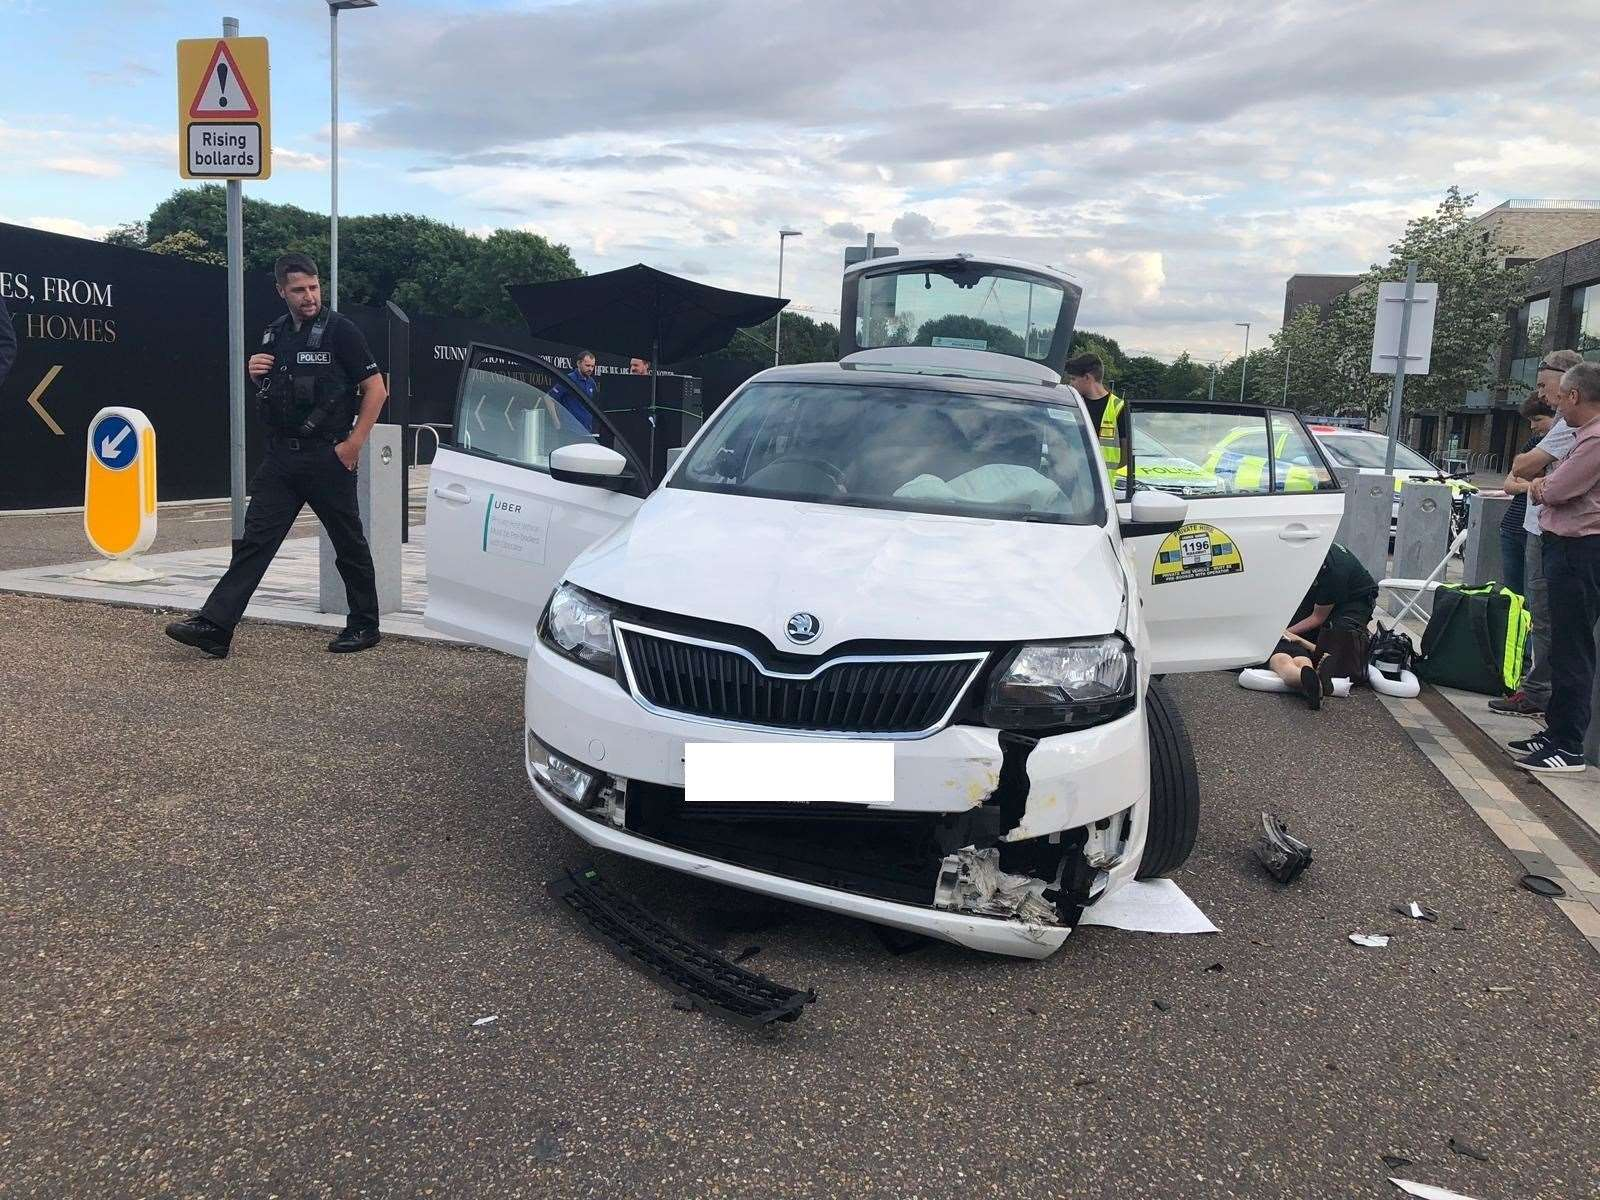 Police attend the scene of a Uber car collision with a bollard on Eddington Avenue in Cambridge. Pic: Errol Ballantyne (13730930)